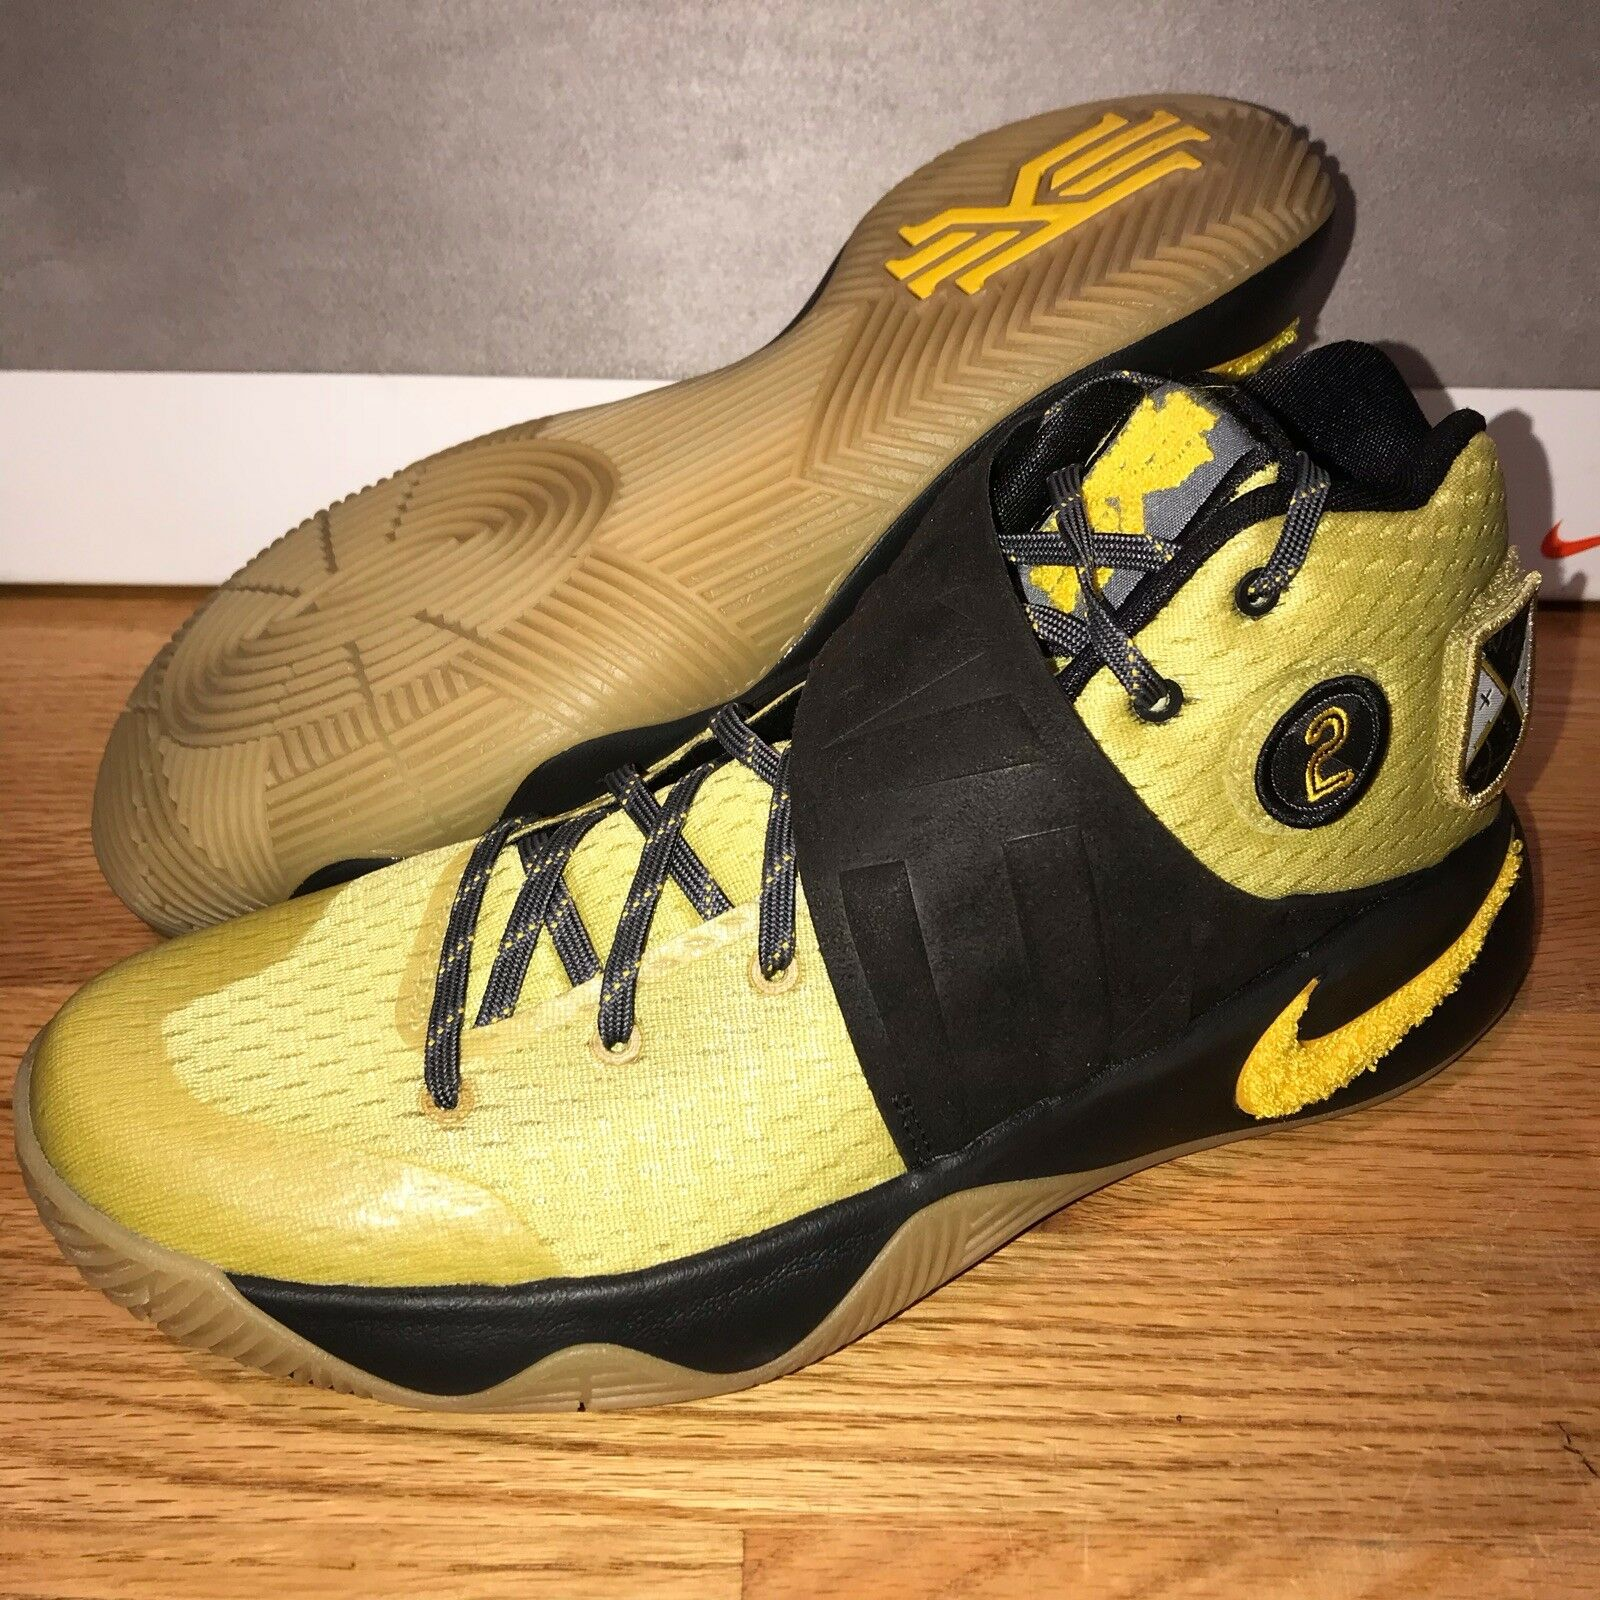 Nike Kyrie 2 All Star AS Patch Size 8.5 2016 835922 307 Black Yellow Gum